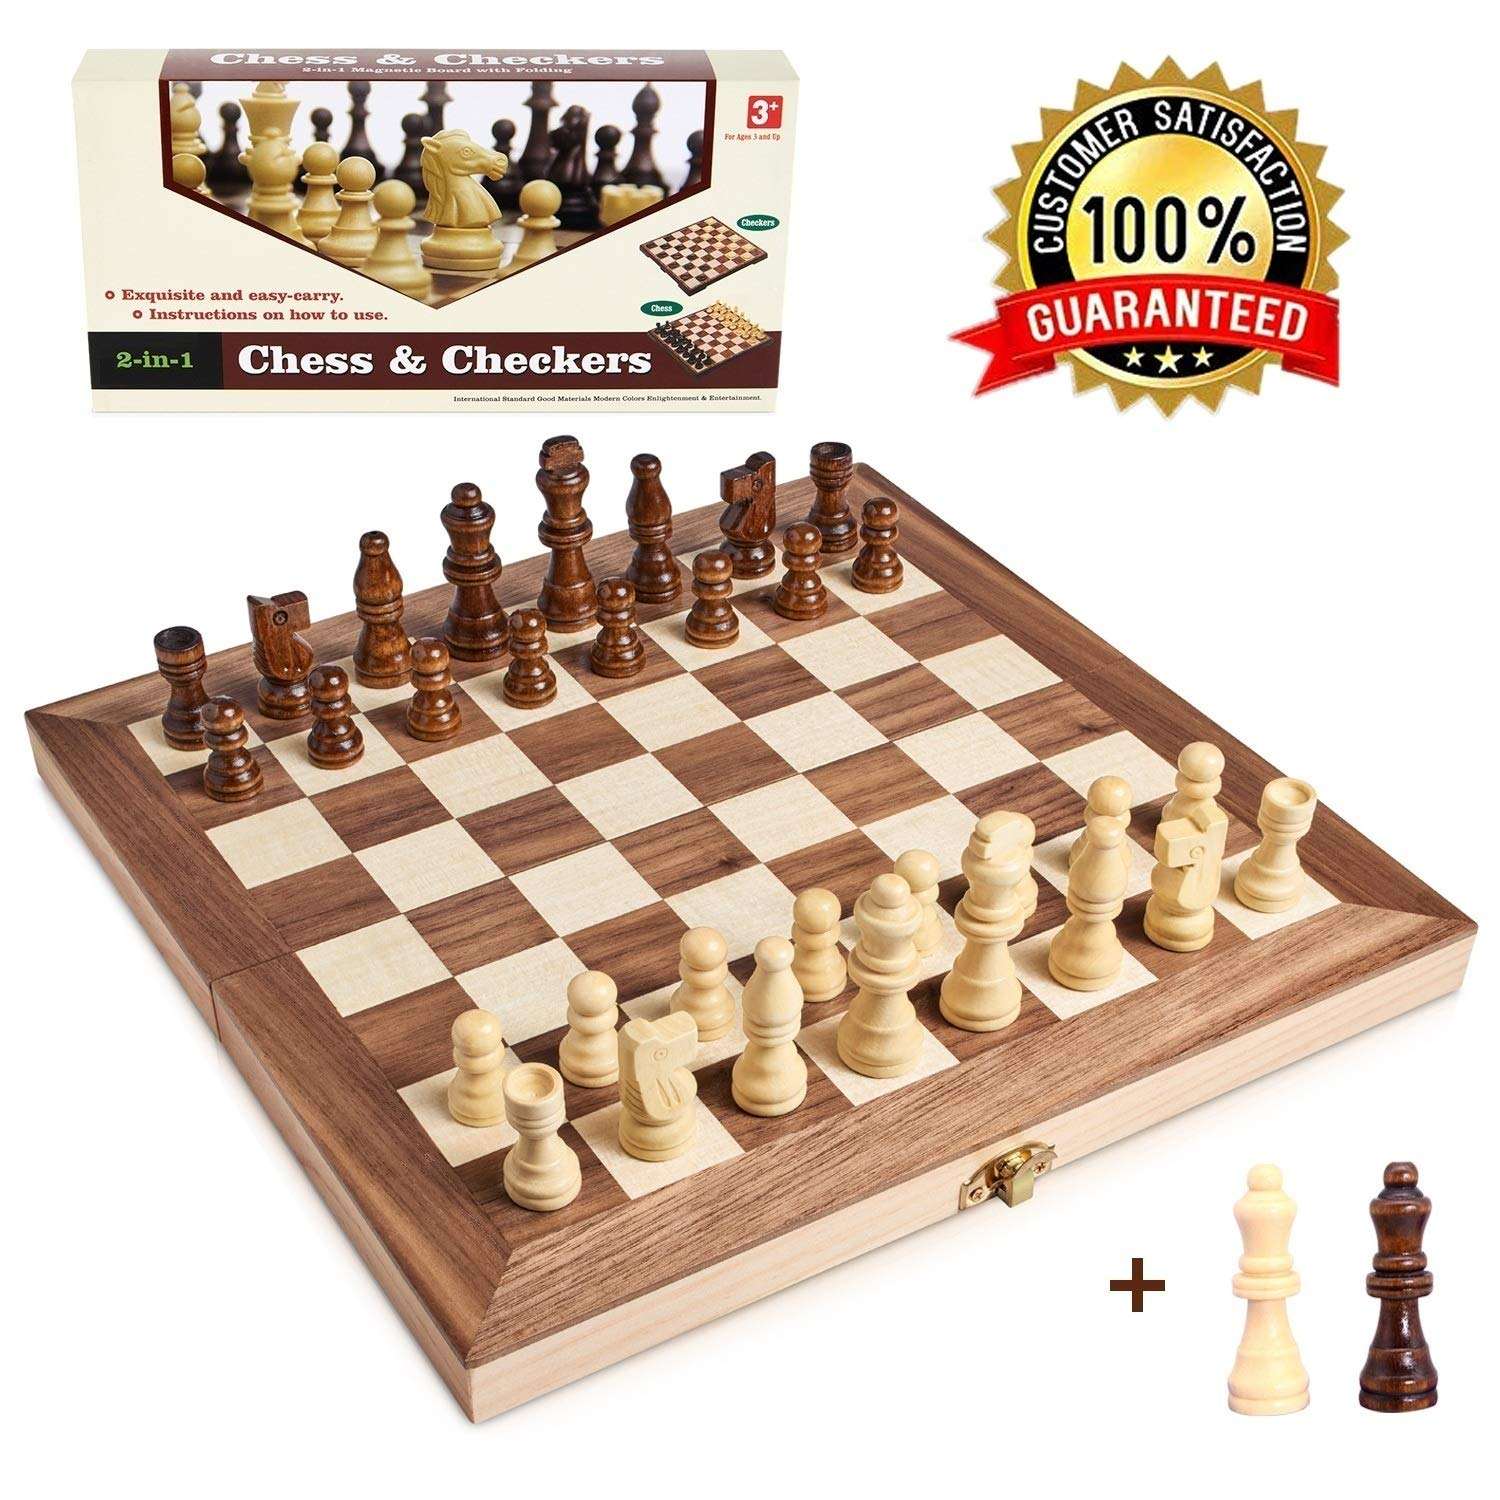 Wooden Chess Set for Kids and Adults, Folding Chess Board Travel Chess and Checkers Set Game Board Interior for Storage - 2 Extra Queens ( 12'' x 12'' ) by Jseraph